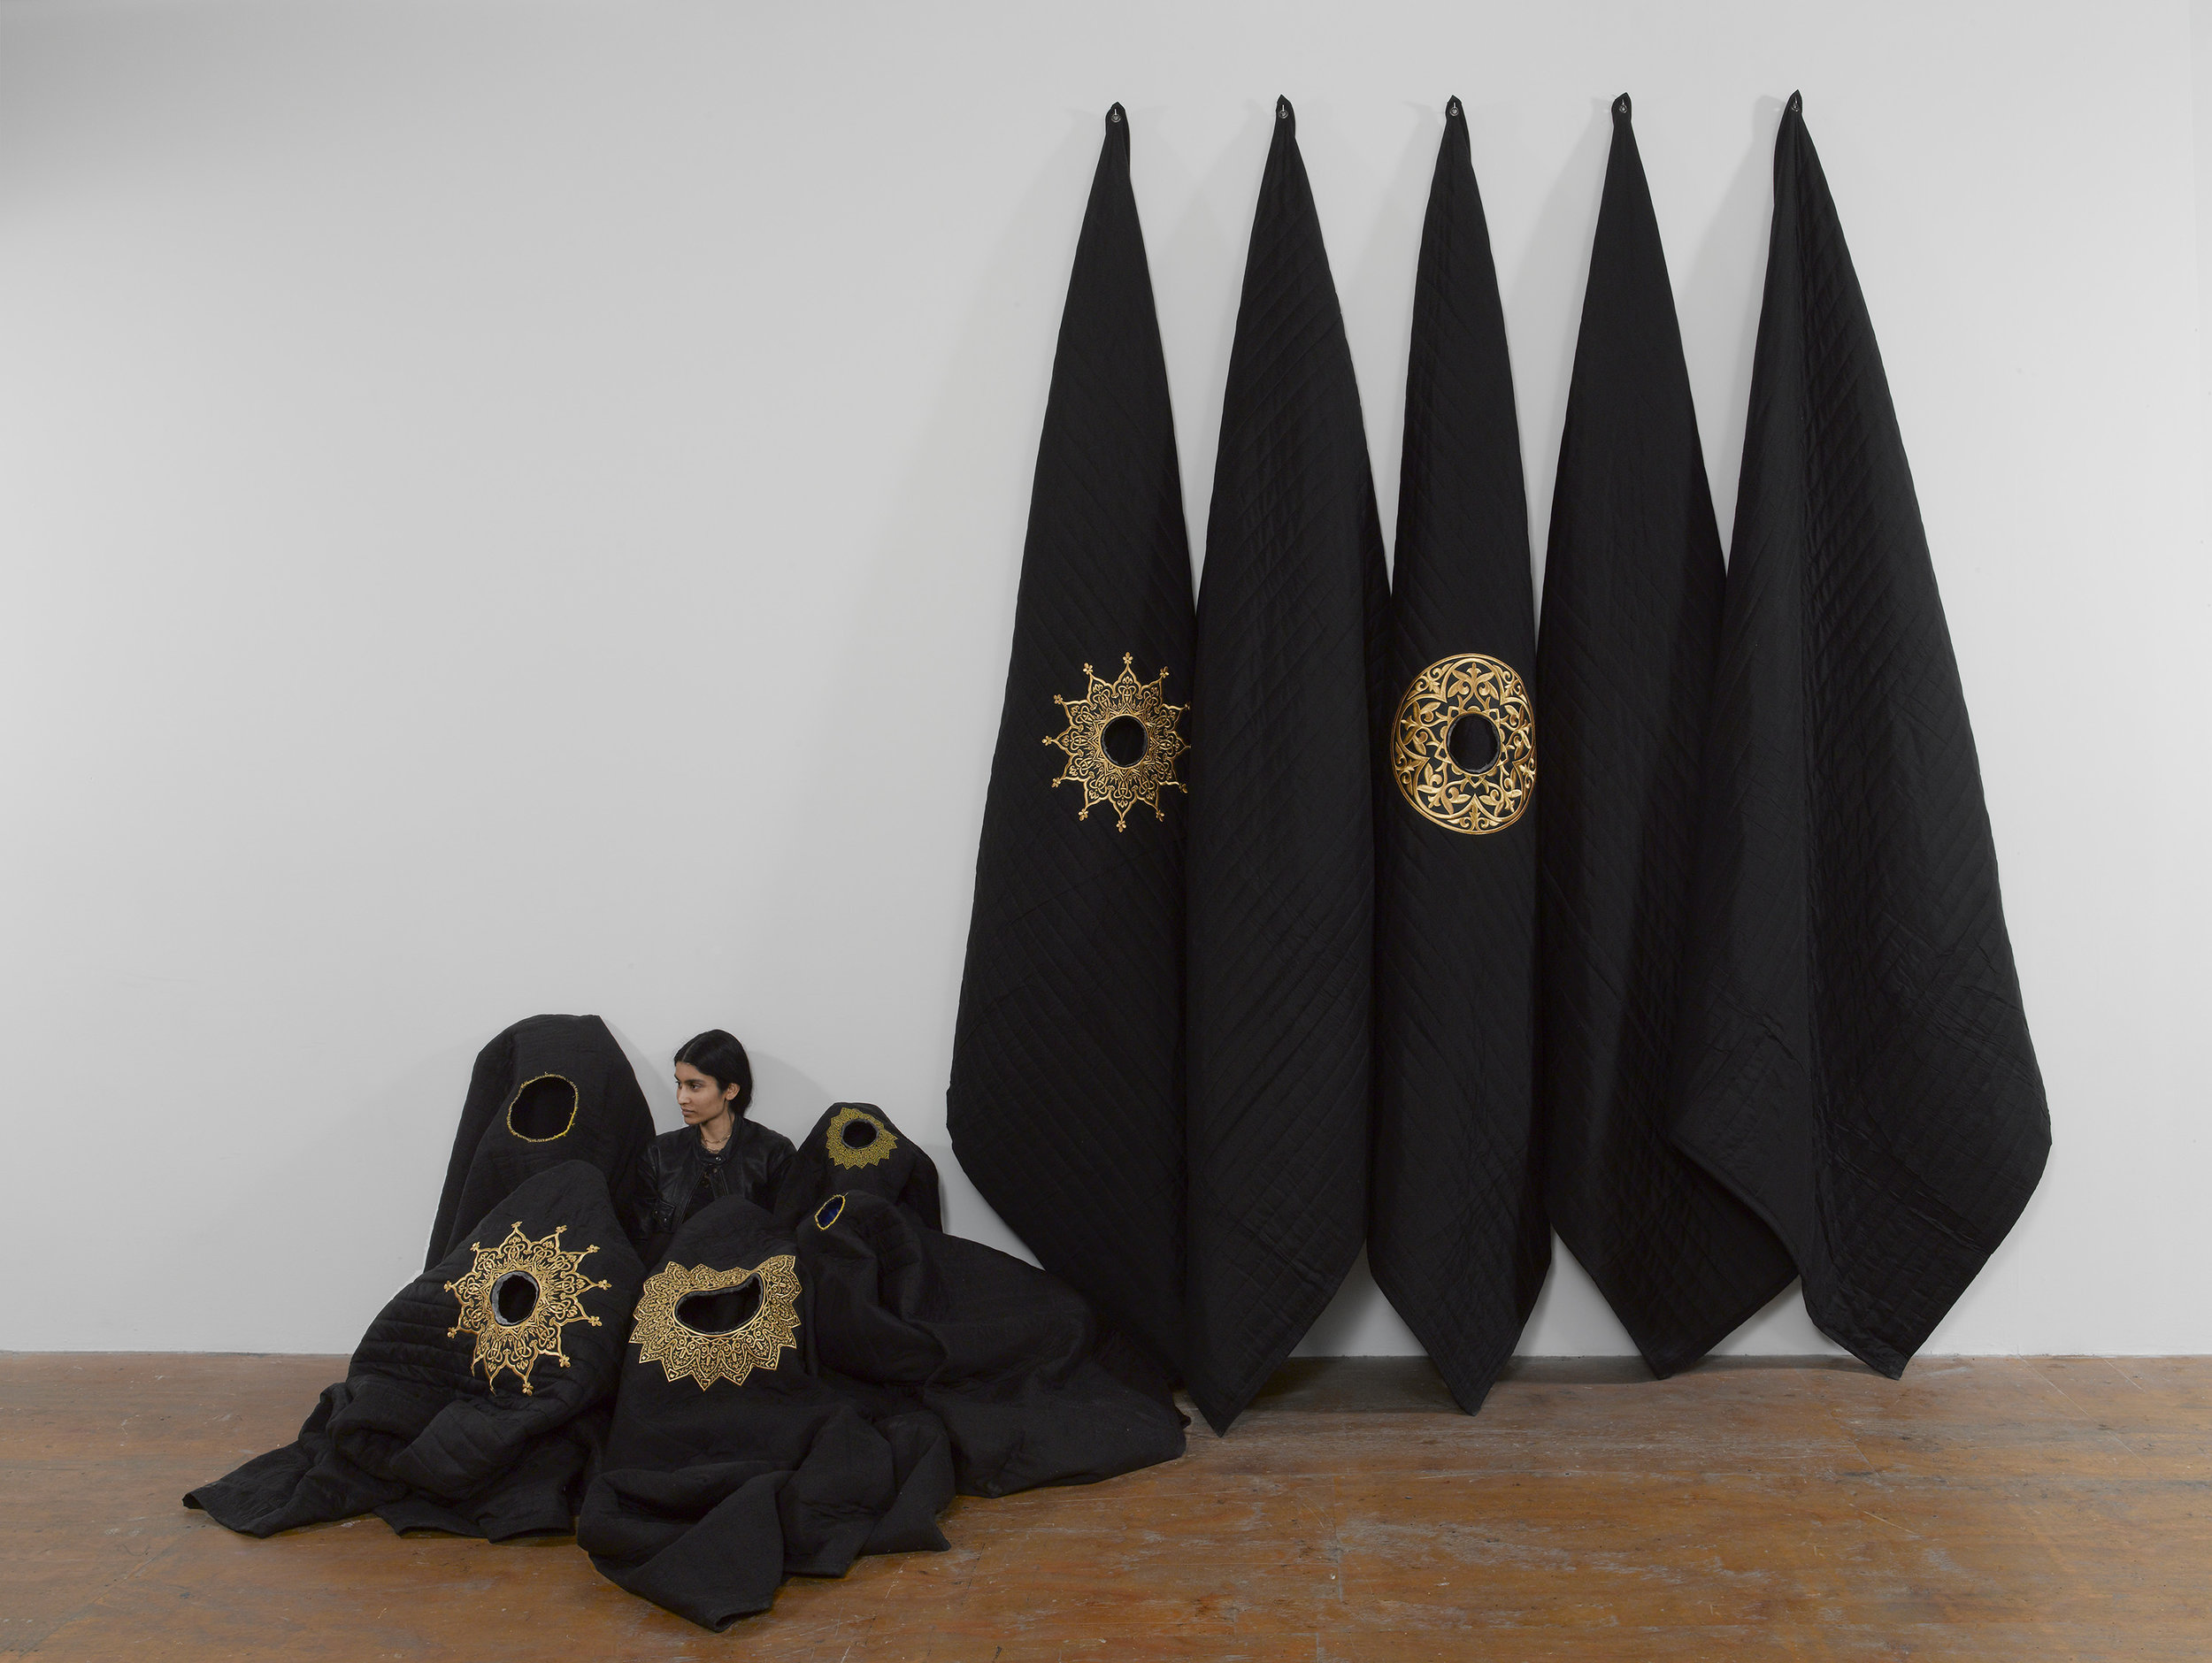 Acoustic Sound Blankets , Silk, felt, industrial sound insulation, gold custom embroidering, 90 × 85 in, 2017